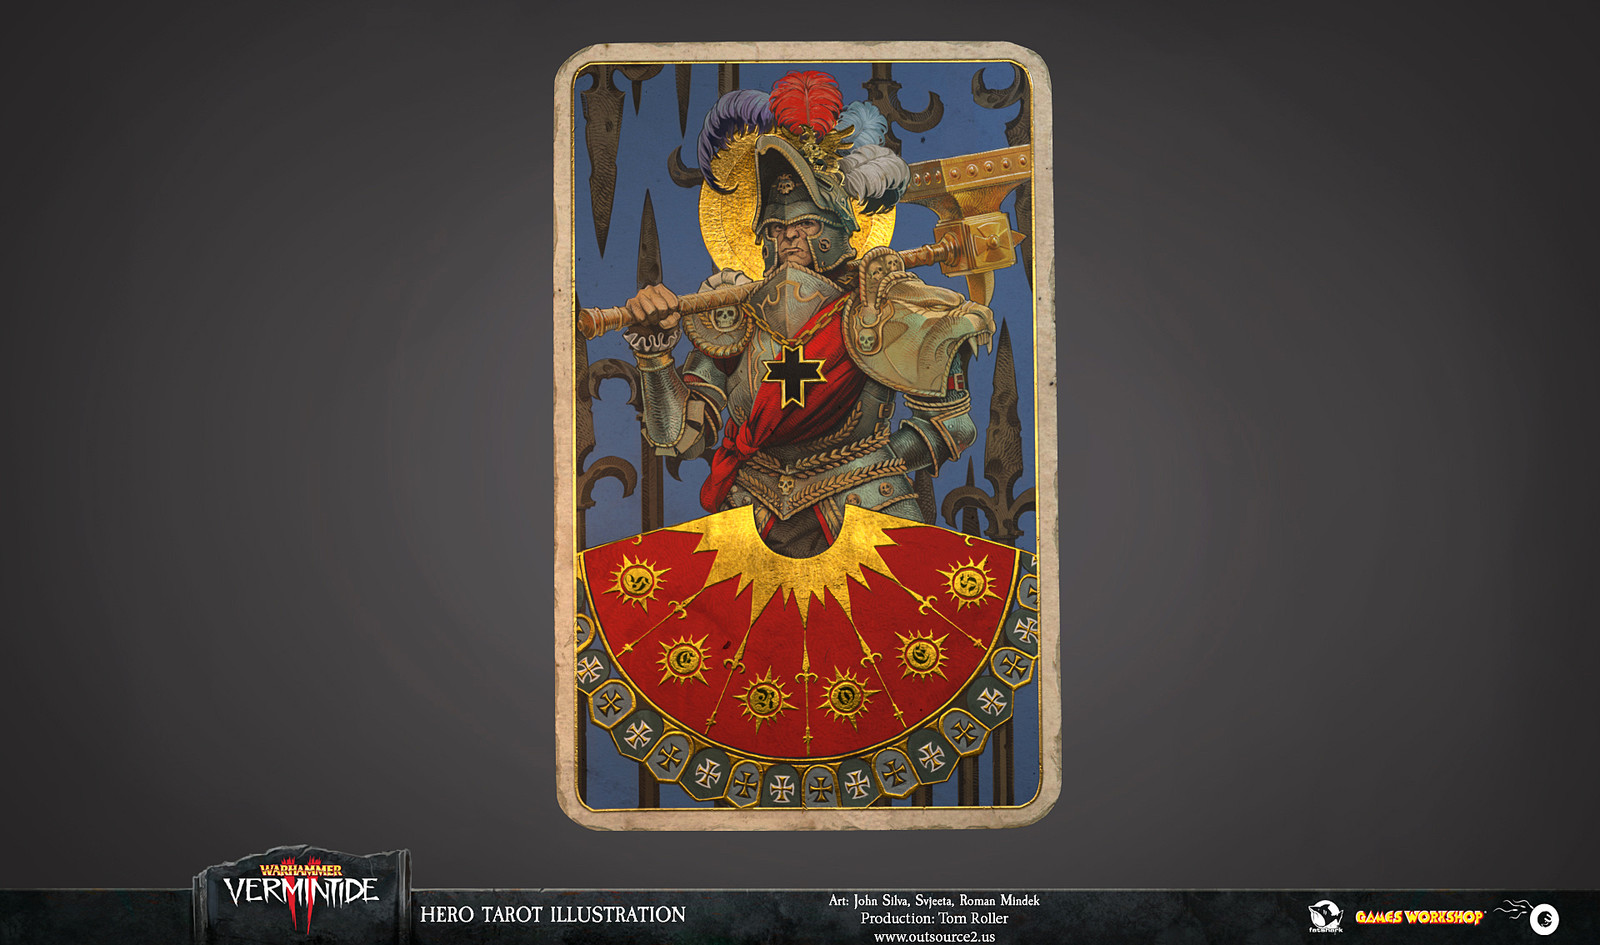 The metallic elements of the tarot give it extra flair in CG cut-scene for Warhammer Vermintide II.